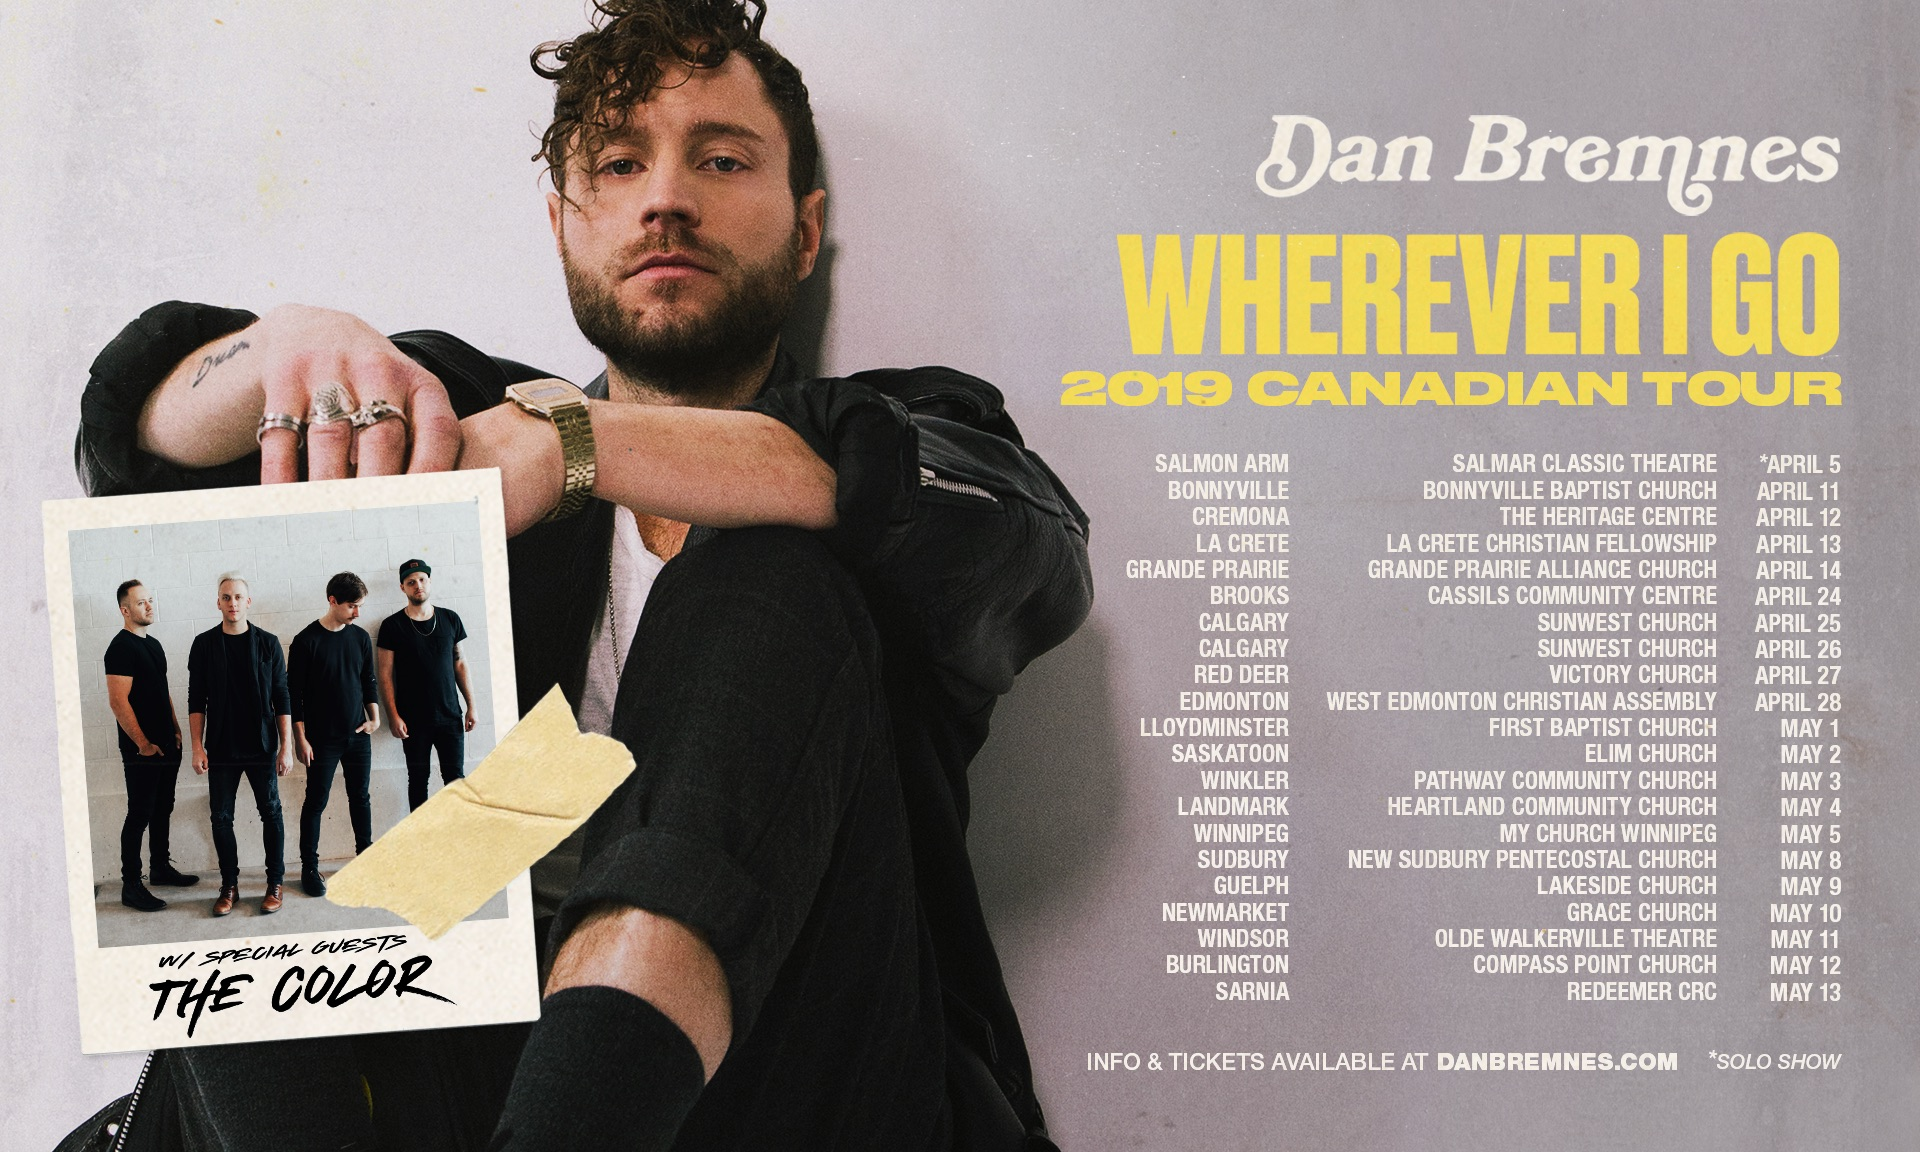 Tickets for Dan Bremnes, Wherever I Go Tour with The Color in Red Deer from BuzzTix